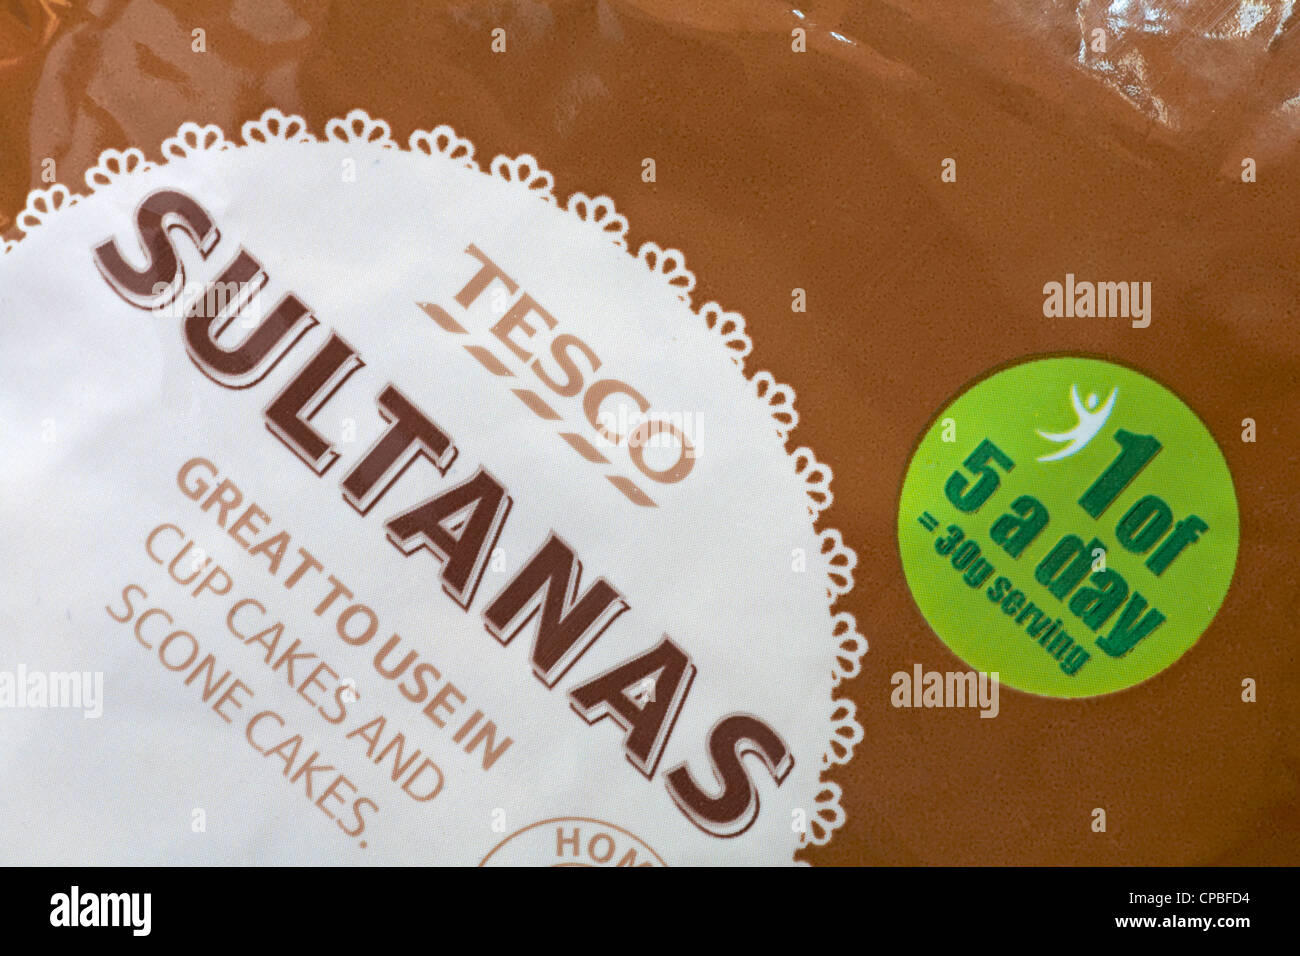 1 of 5 a day label on Tesco Sultanas Stock Photo